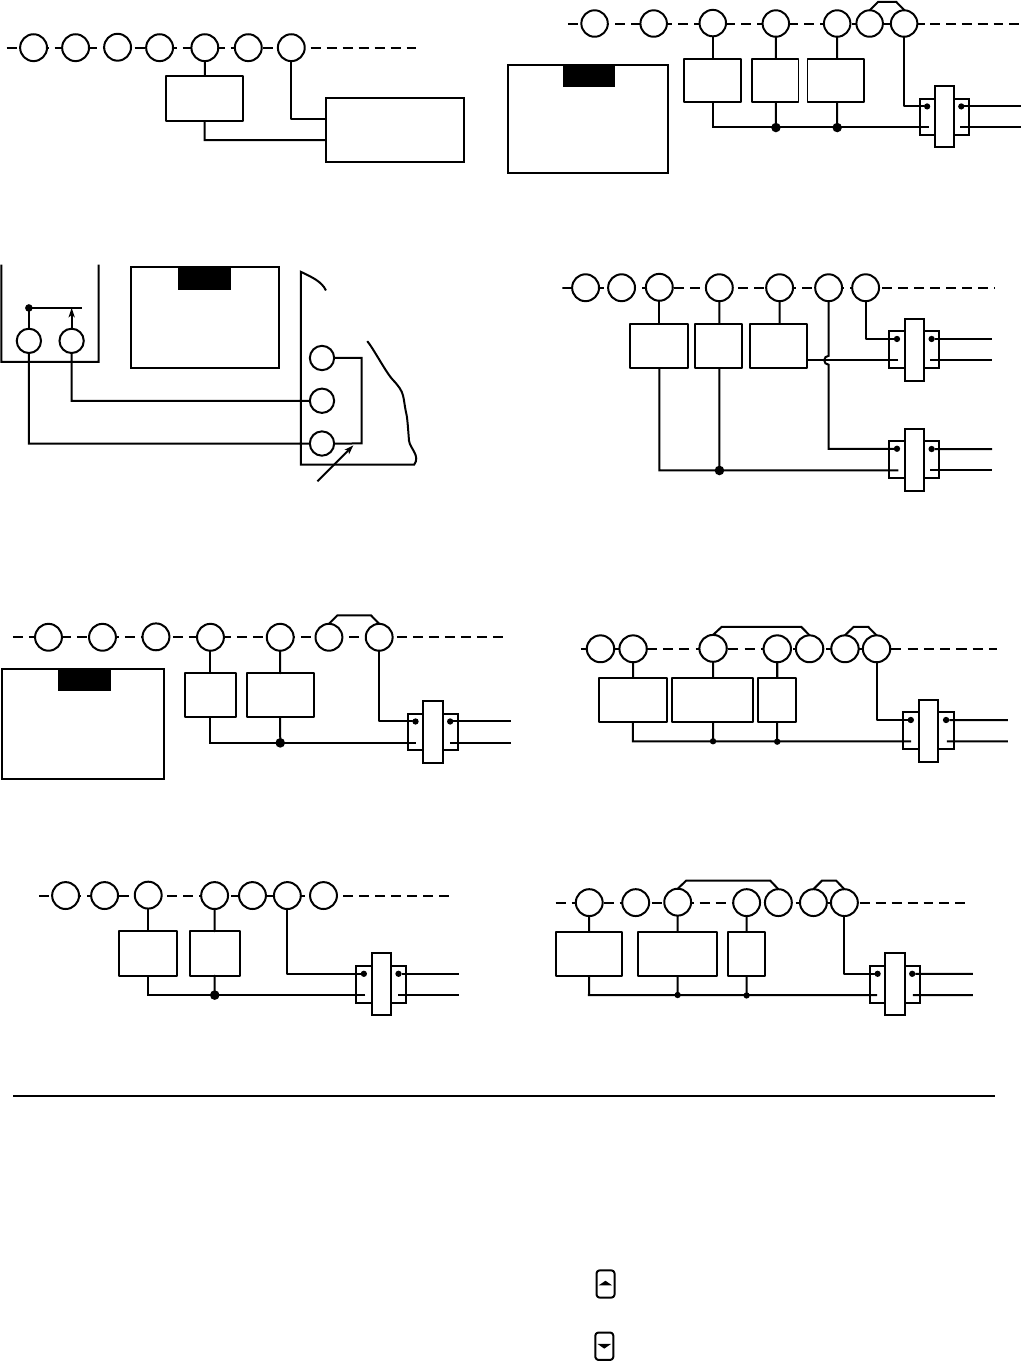 Wiring Diagram For A White 2